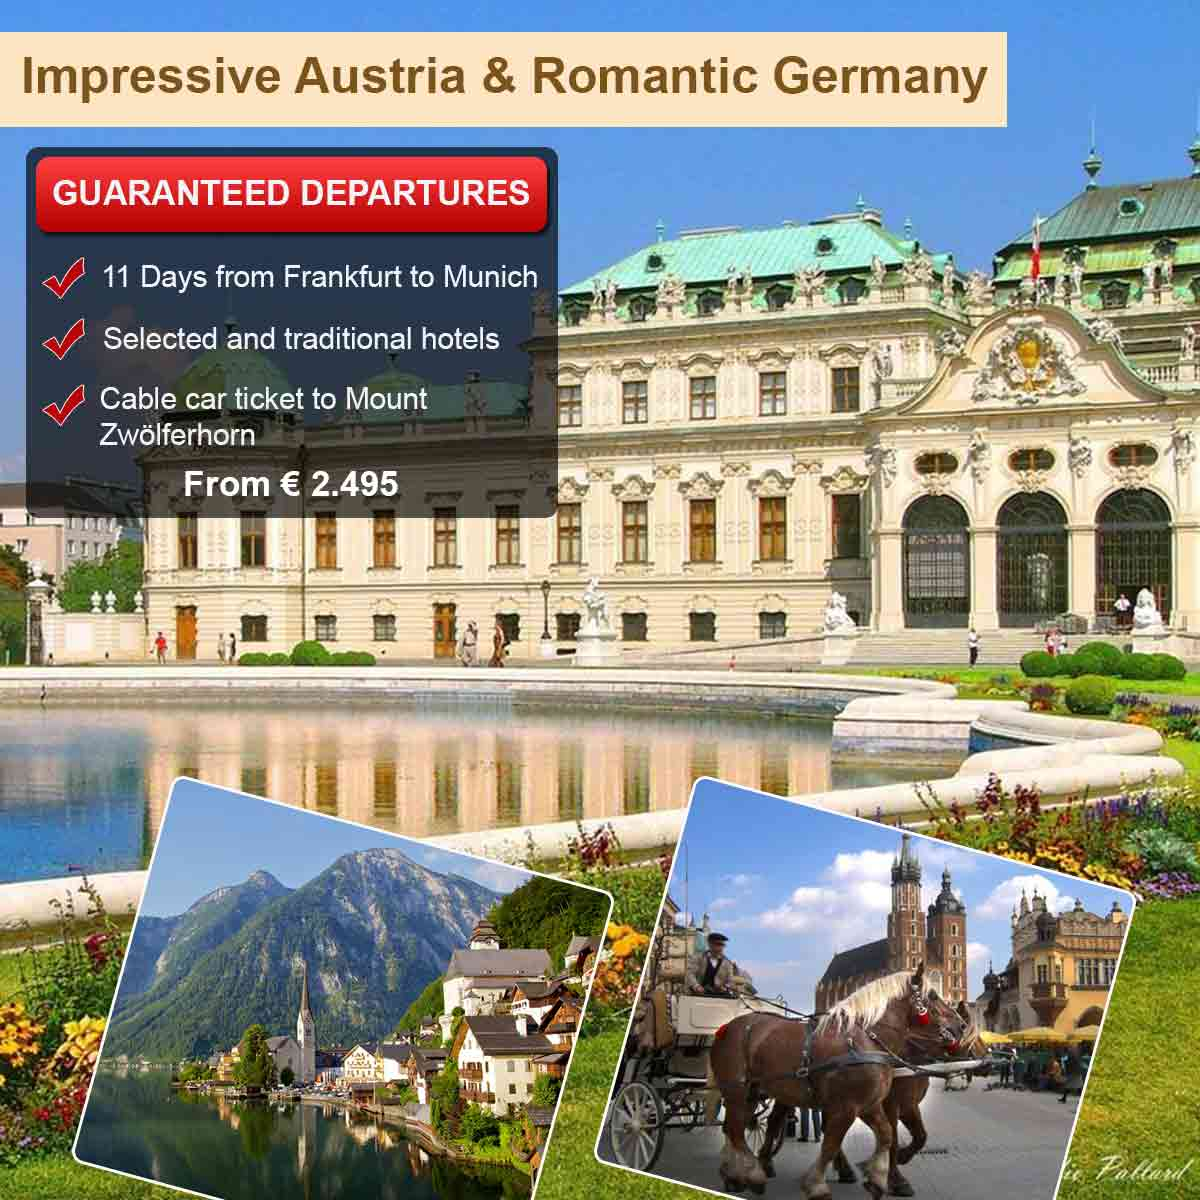 Romantic Germany & Impressive Austria